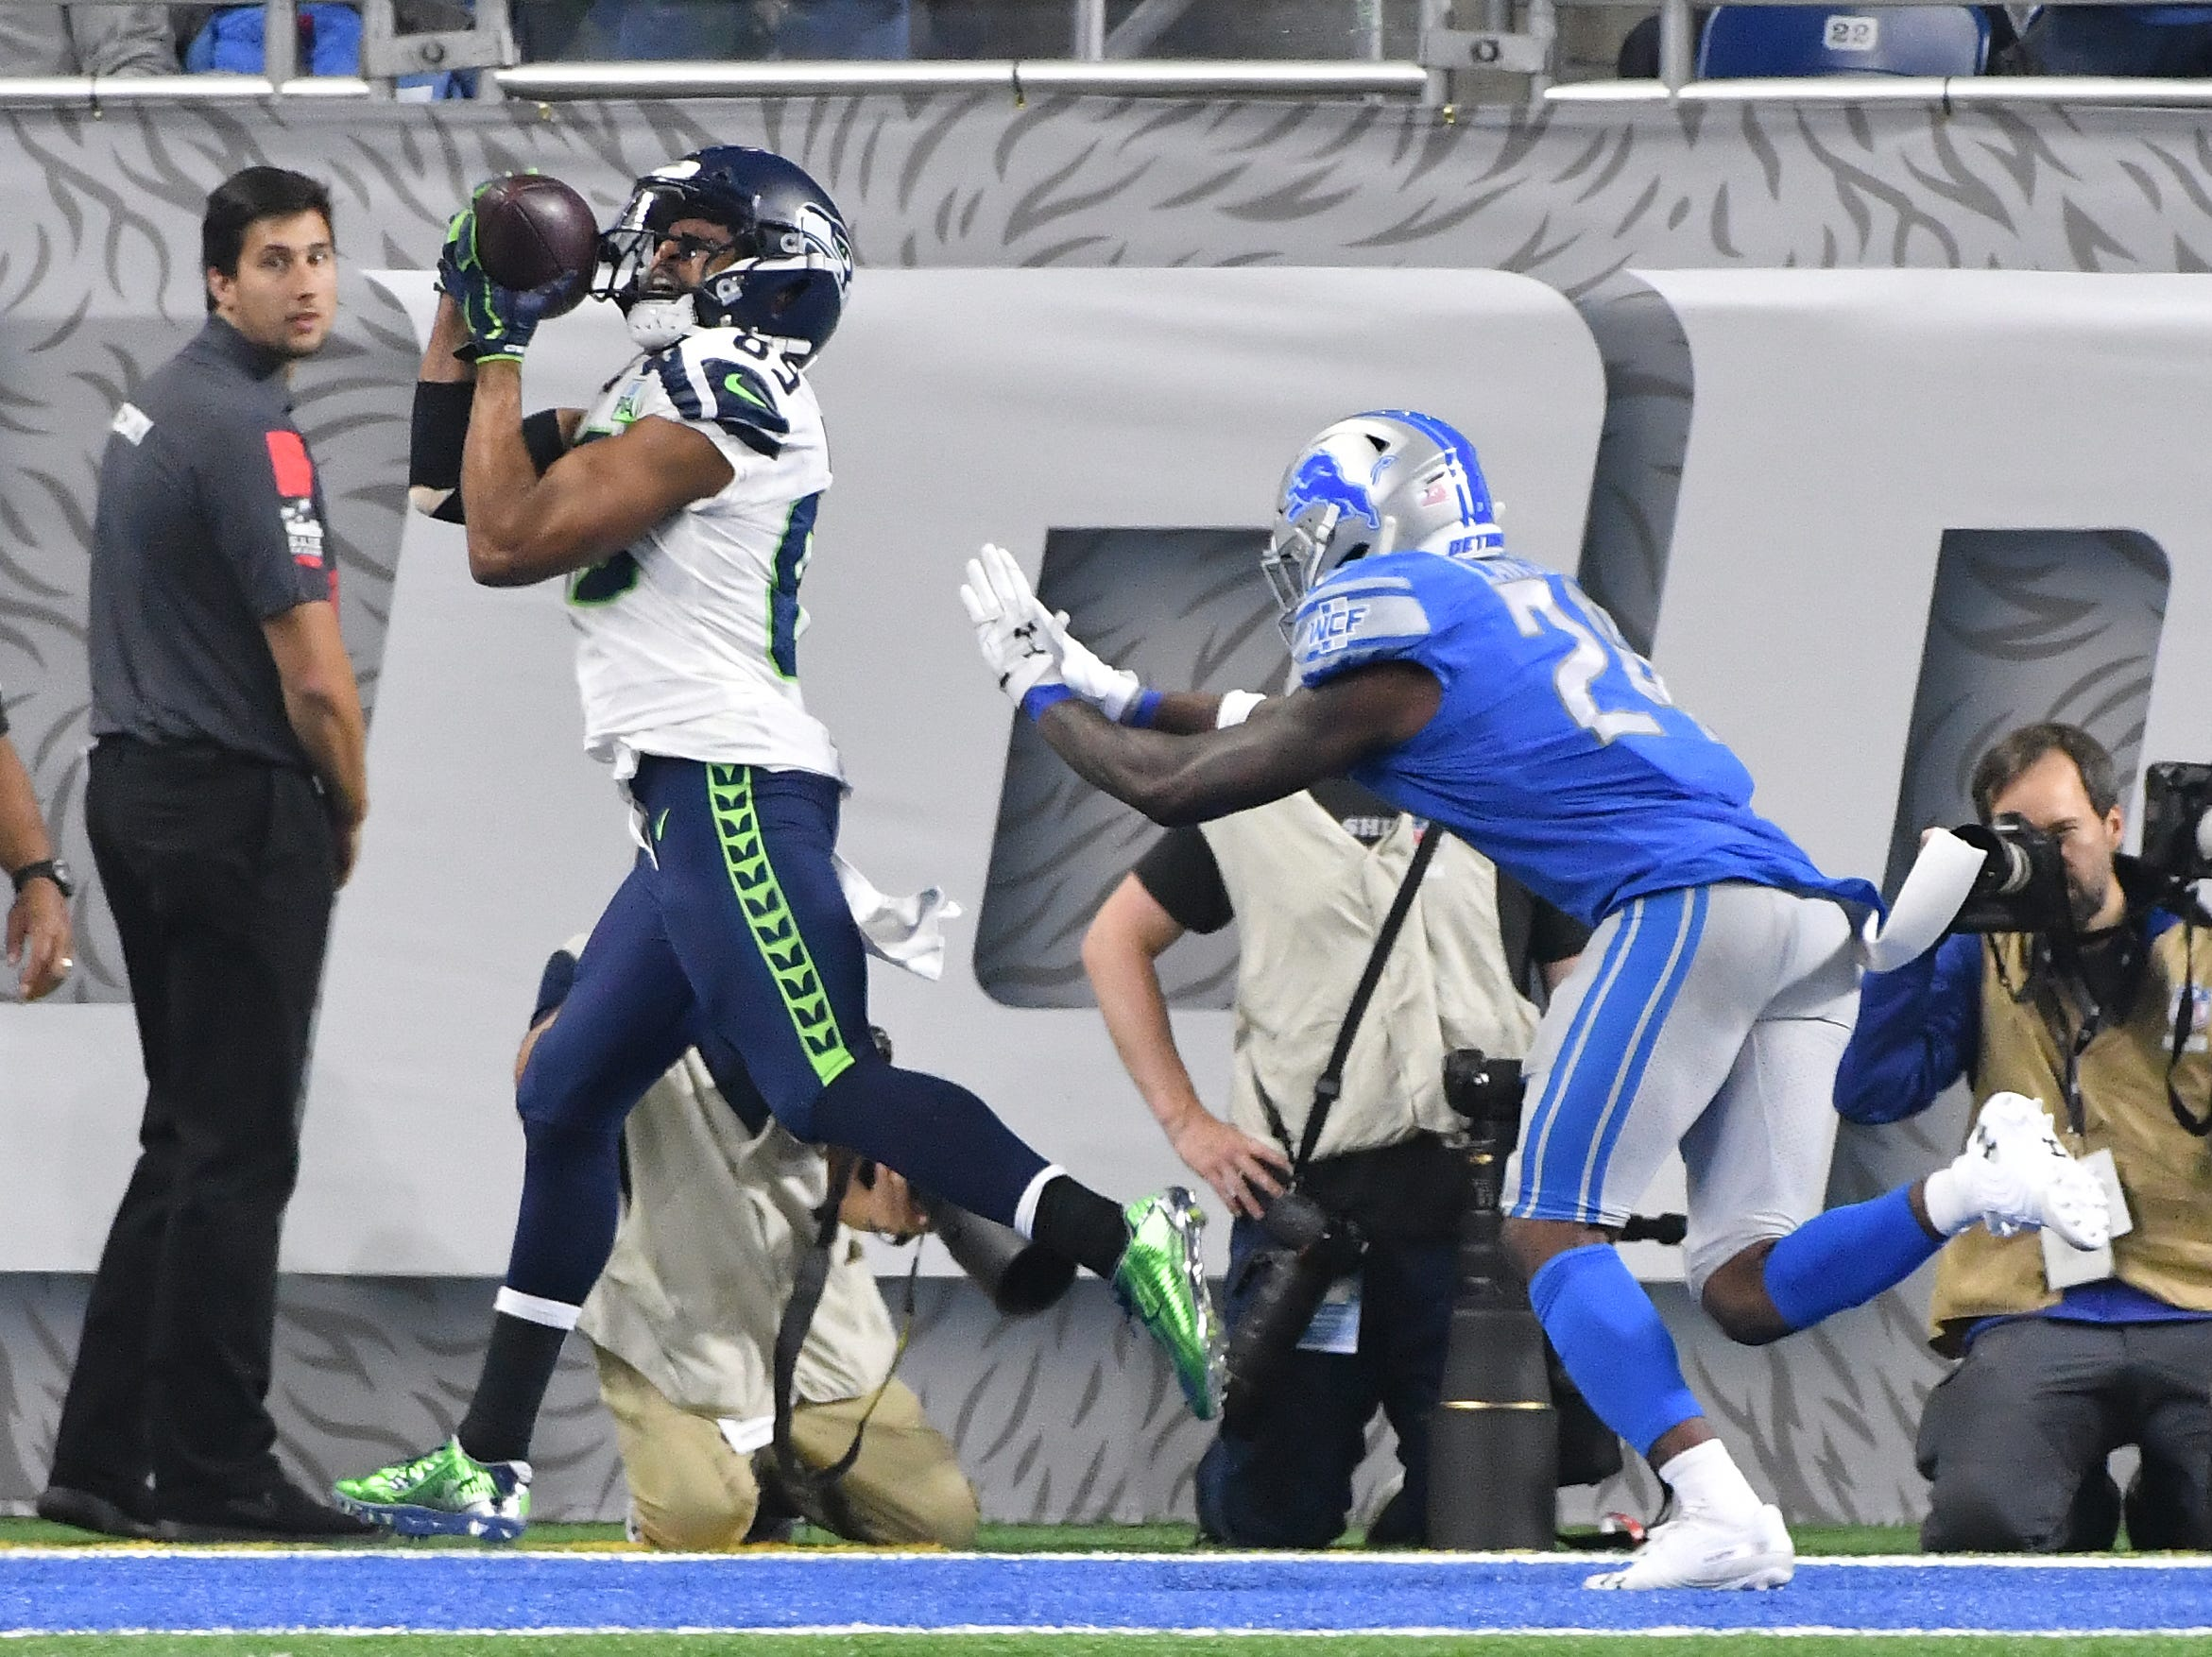 Seahawks' David Moore makes the reception in front of Lions' Nevin Lawson in the end zone but doesn't get two feet down making it an incompletion in the third quarter.